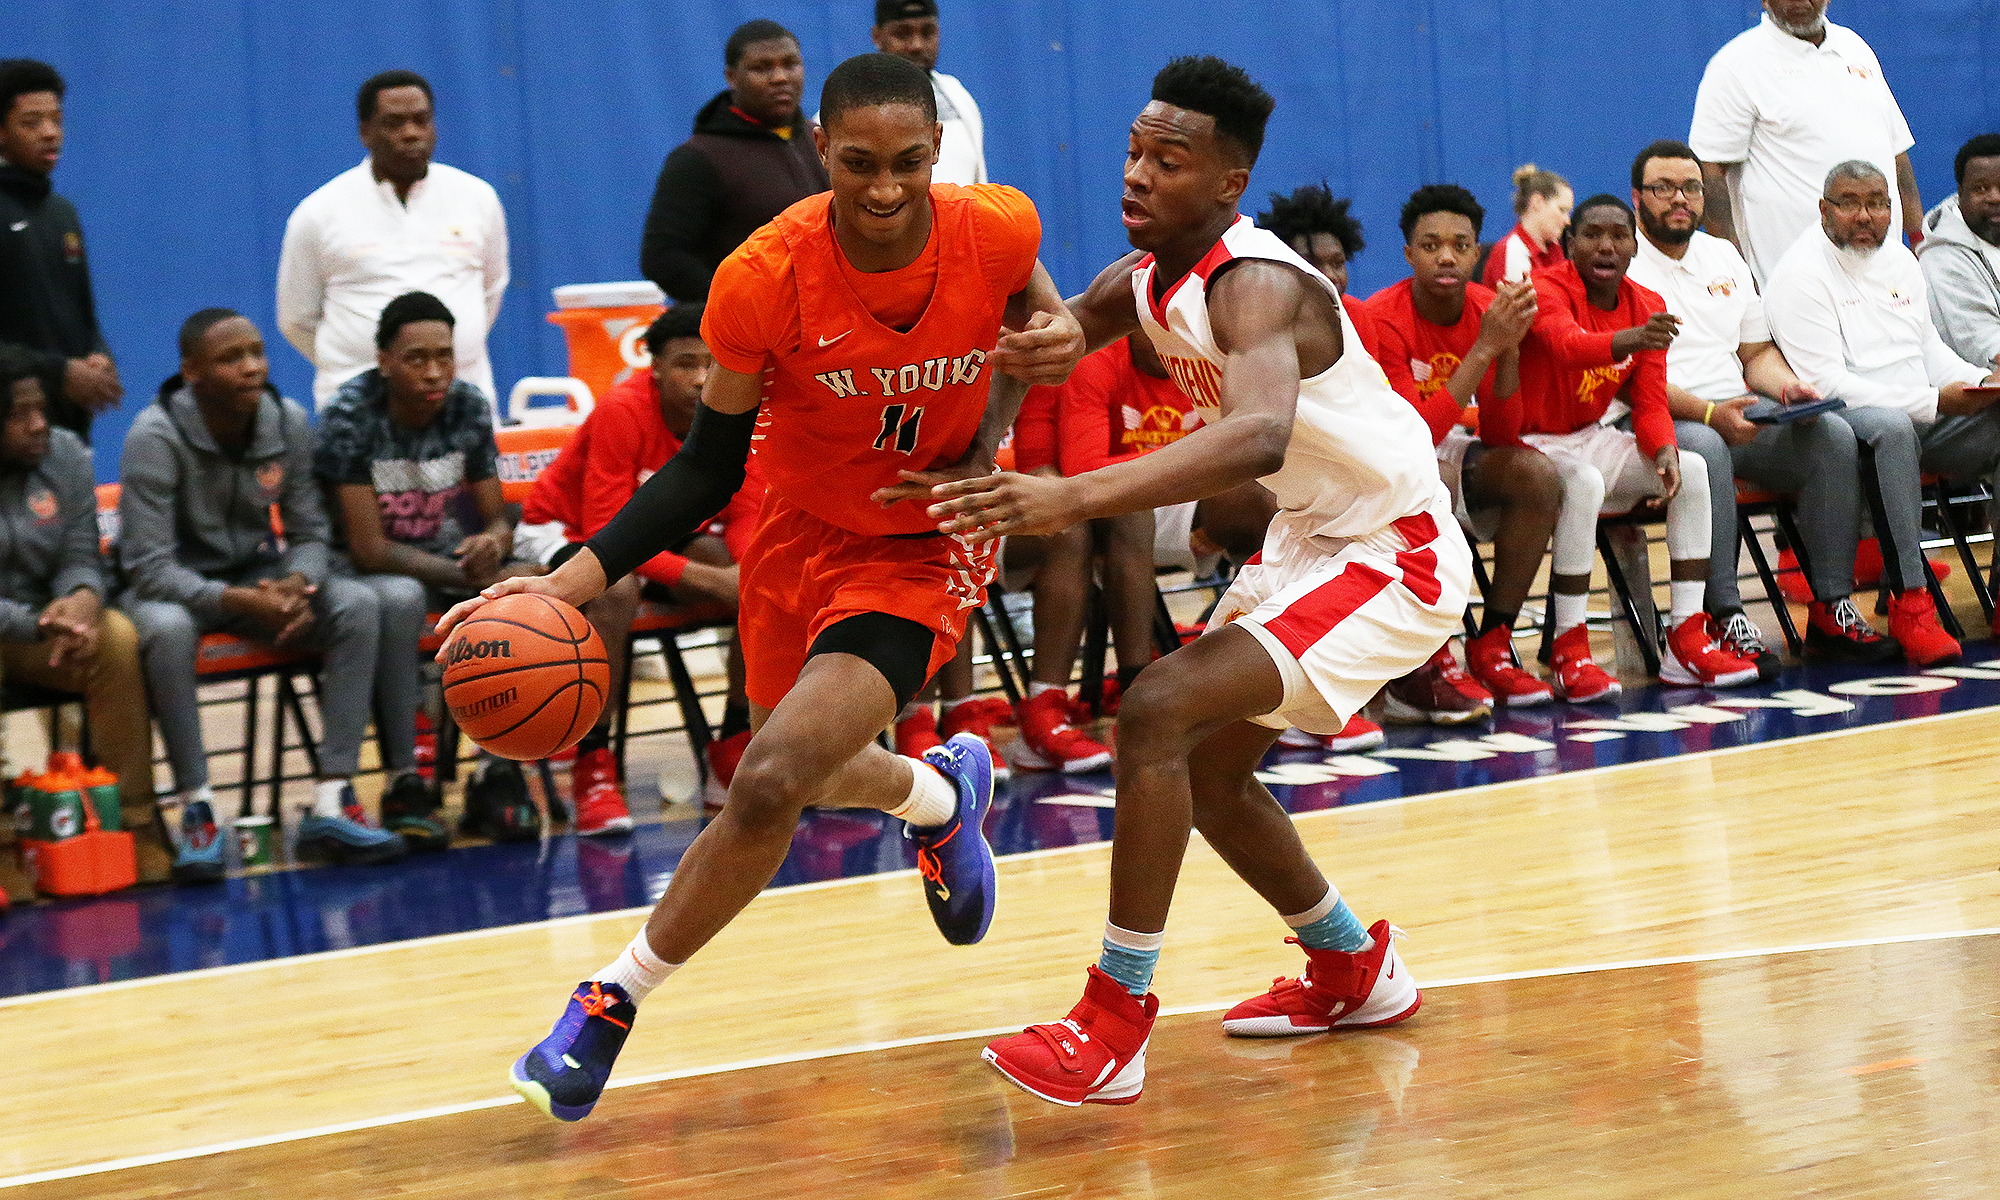 Young's Grant Newell (11) controls the ball as North Lawndale's Larry Johnson defends.